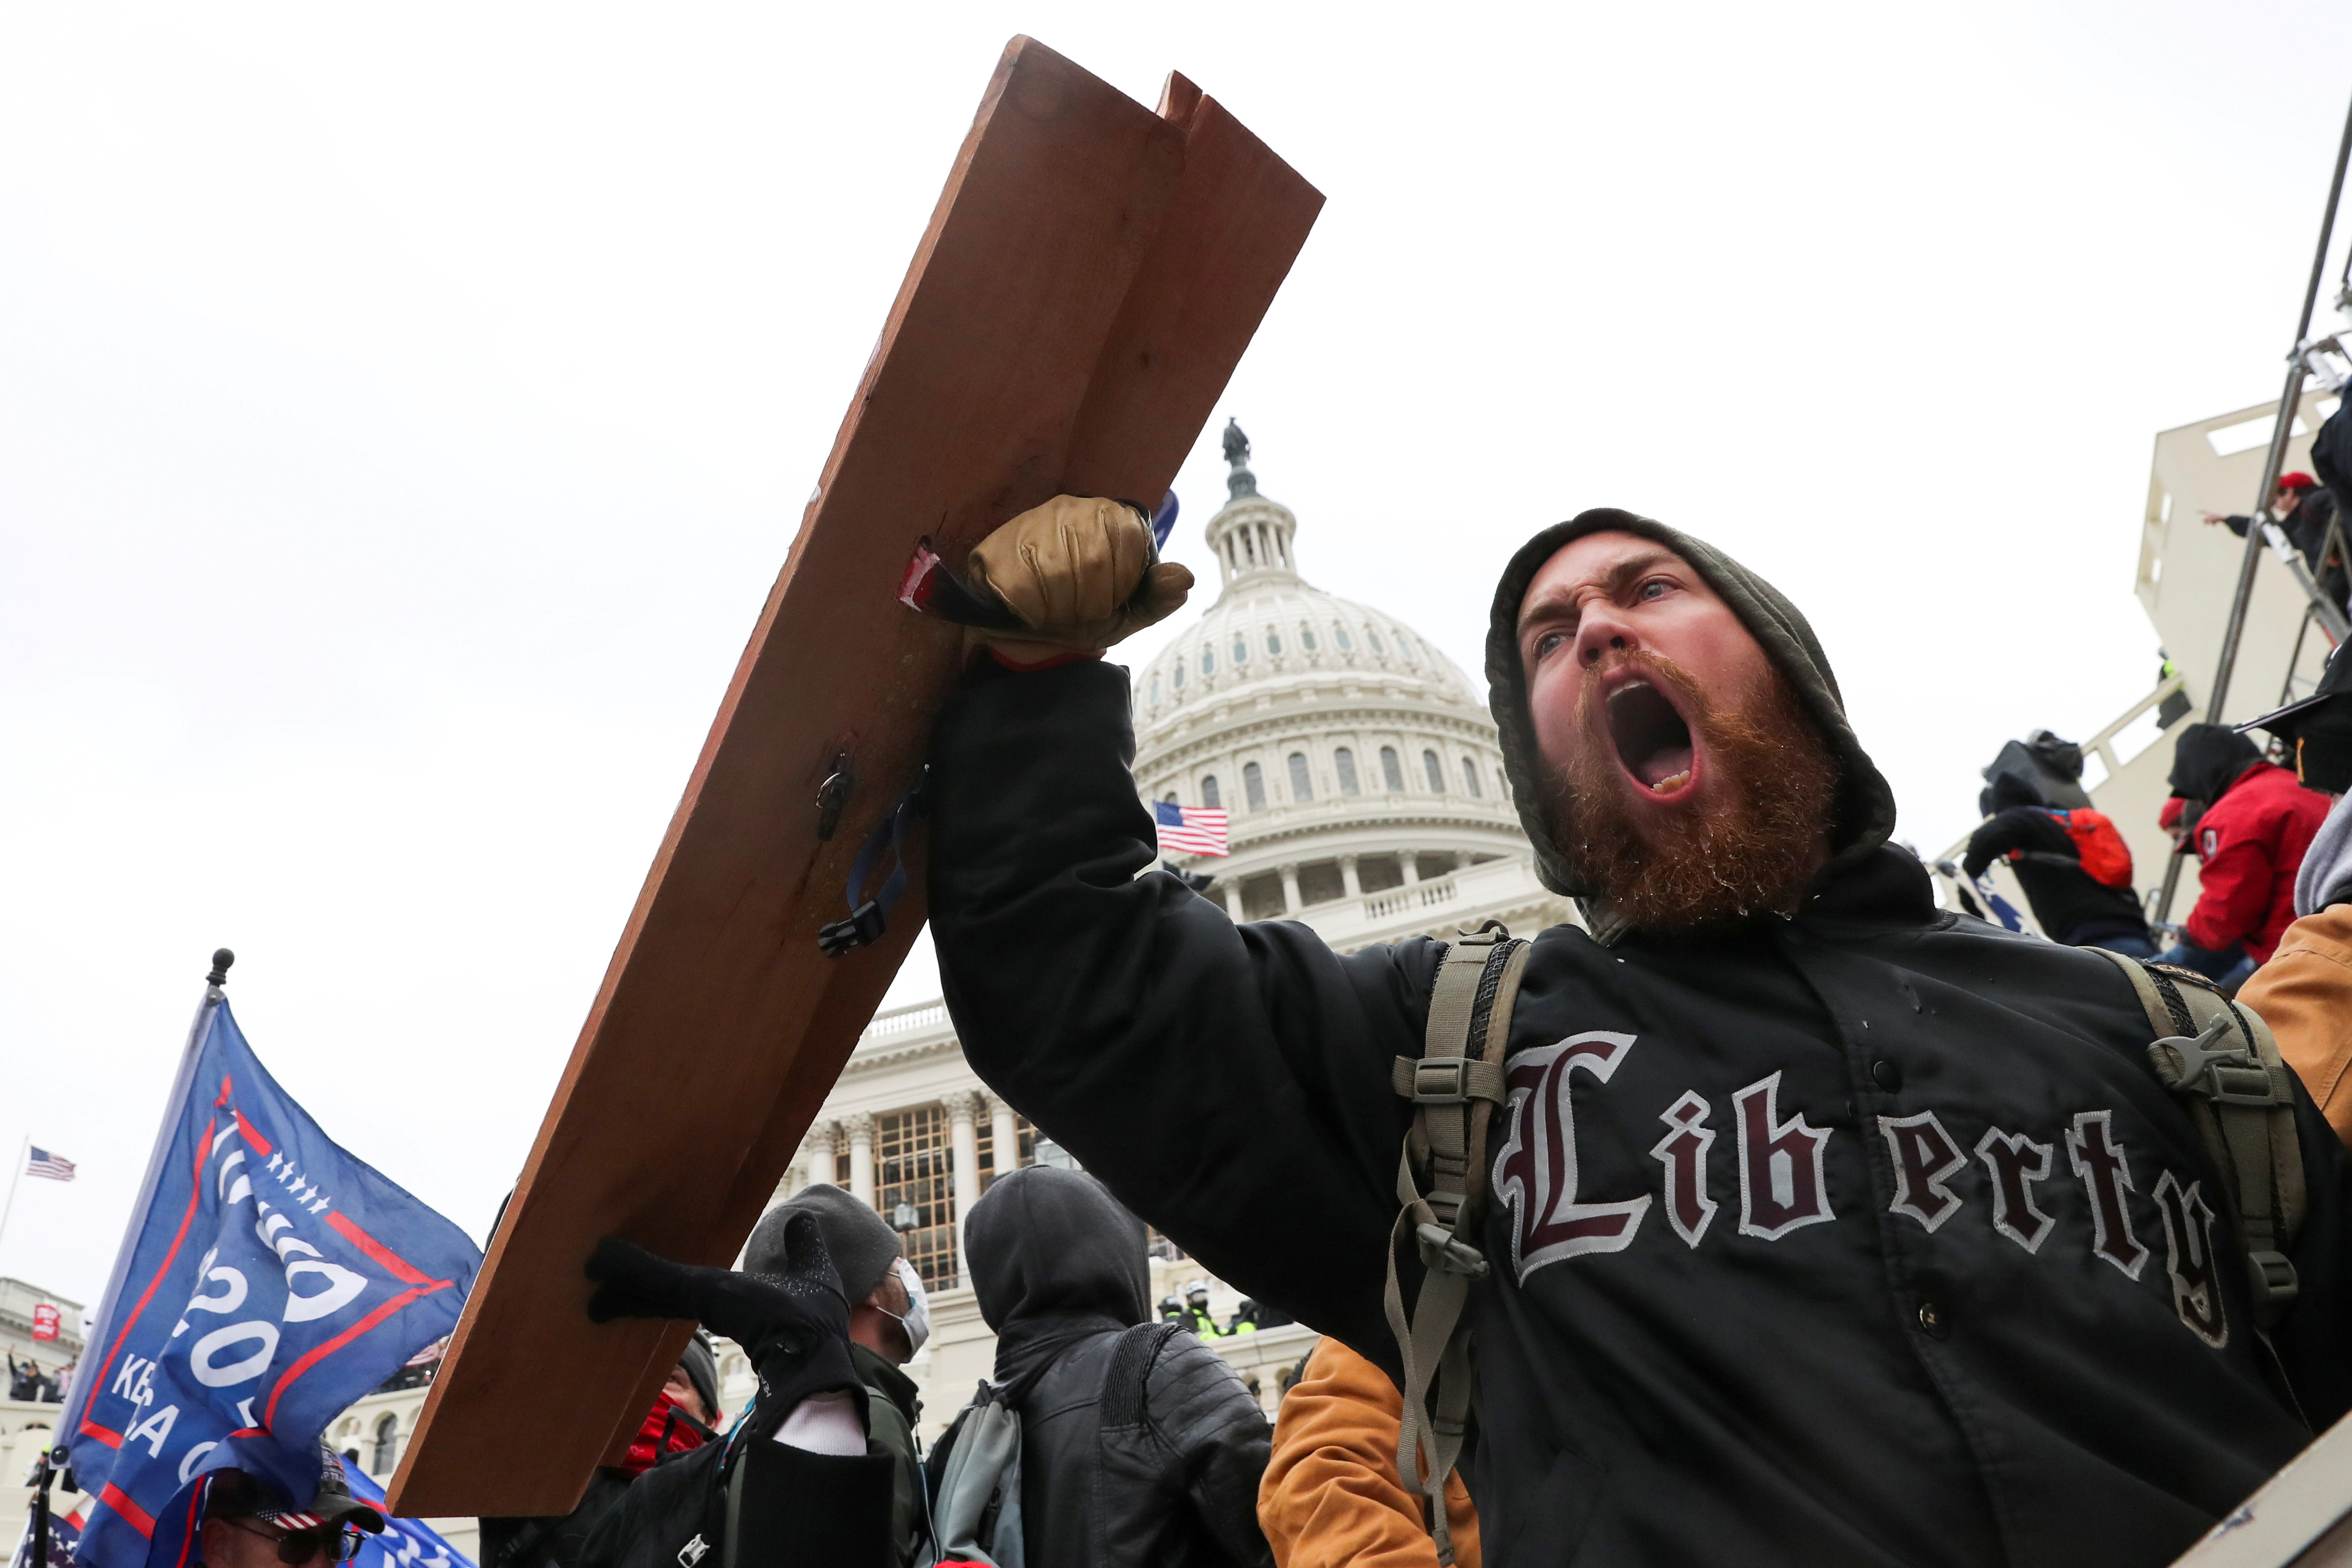 A man shouts as supporters of U.S. President Donald Trump gather in front of the U.S. Capitol Building in Washington, U.S., January 6, 2021. REUTERS/Leah Millis     TPX IMAGES OF THE DAY - RC2K2L9PX1RZ